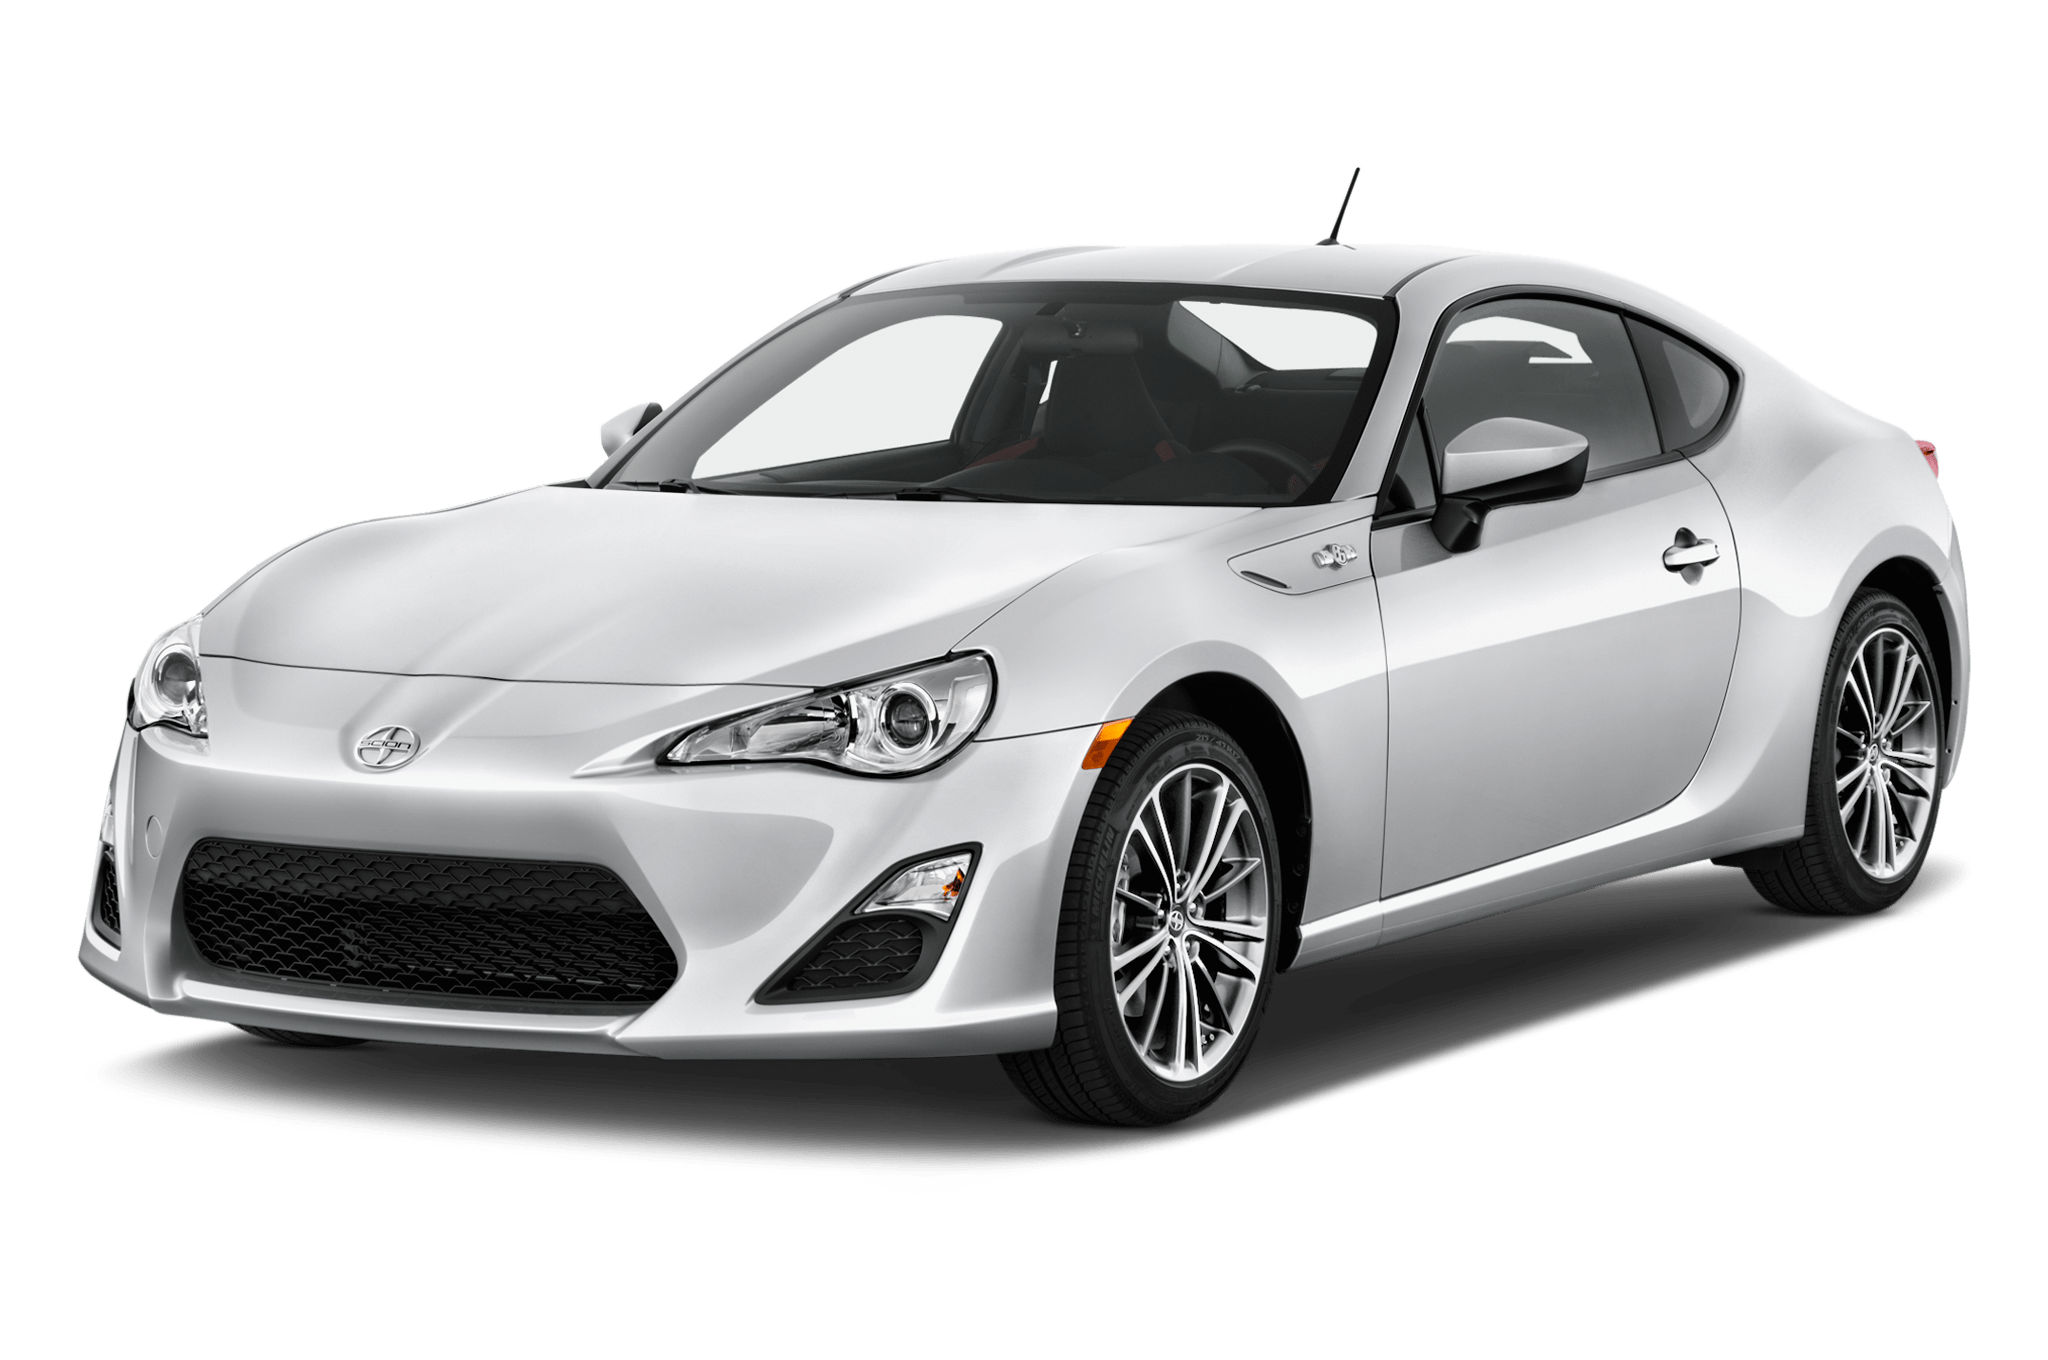 Gt86 Car Wallpaper One Week With 2016 Scion Fr S Release Series 2 0